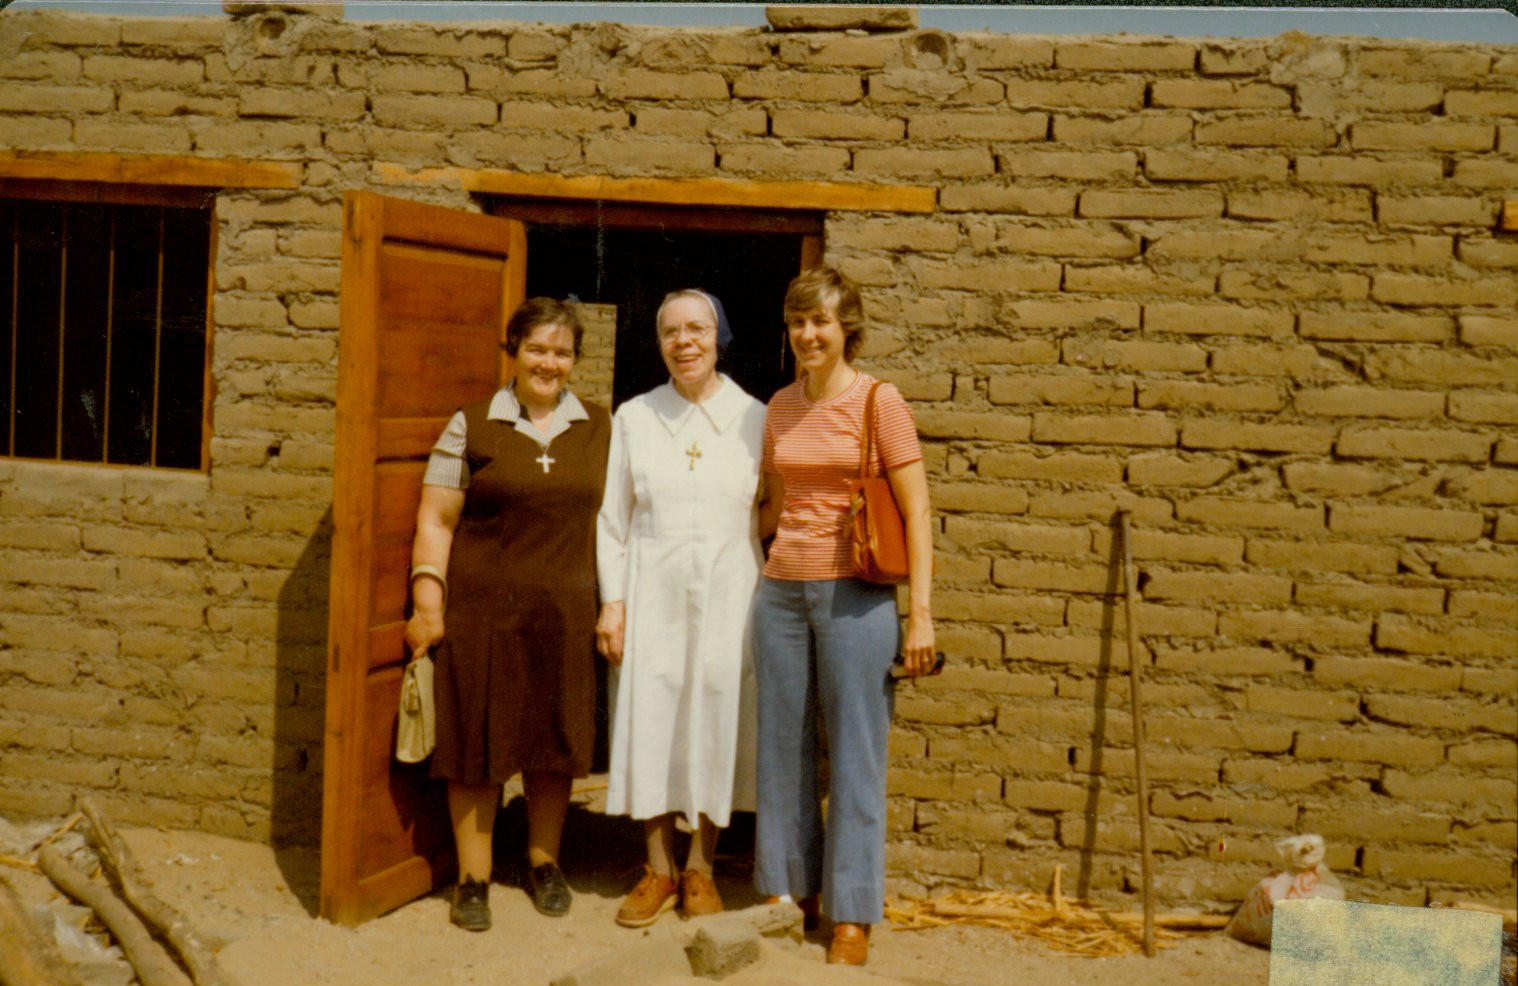 Sr. Louise Mair (center) worked for many years as a cook at the Provincial House in St. Louis, Missouri. She later served in Cambio Puente, Peru, living in a simple house the Sisters built themselves.  Sr. Louise baked bread to share with her neighbors; she was very much loved by the people of Cambio Puente.